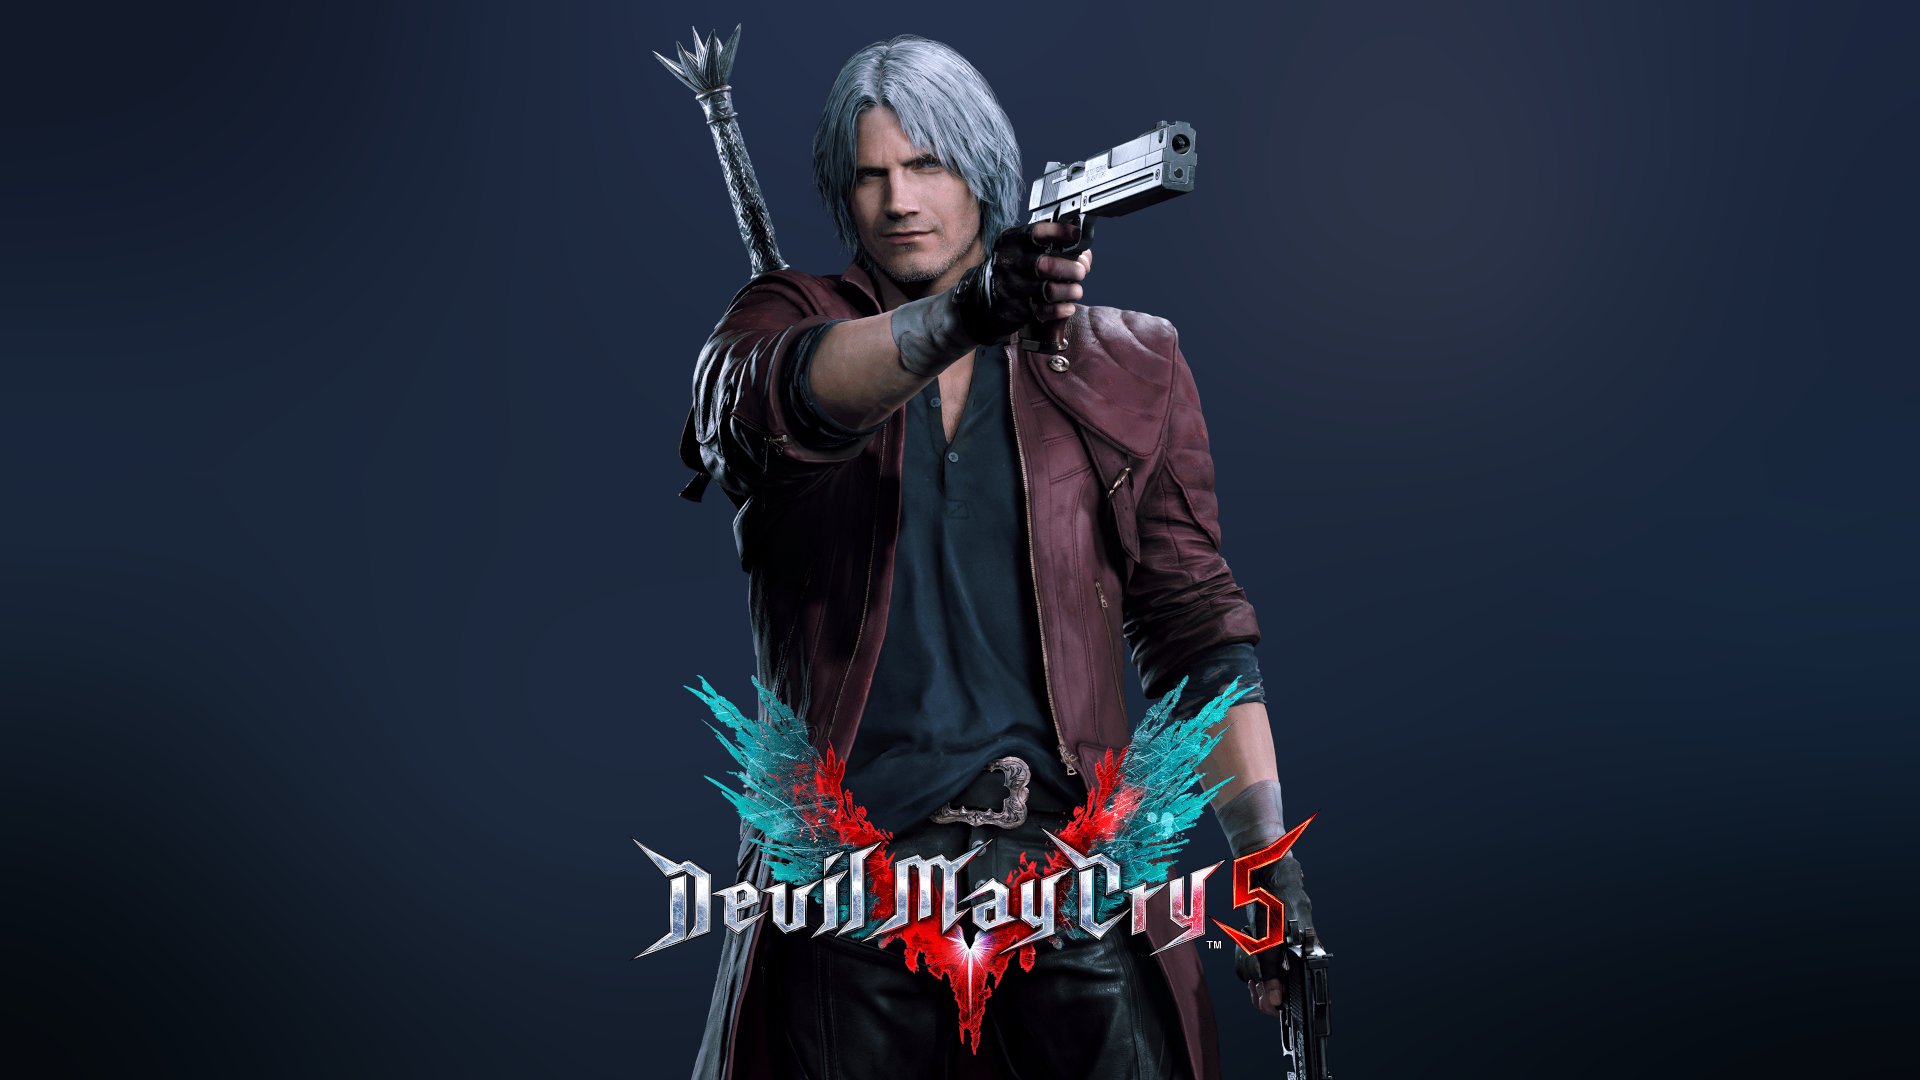 Dante Devil May Cry 5 Hd Wallpaper Background Image